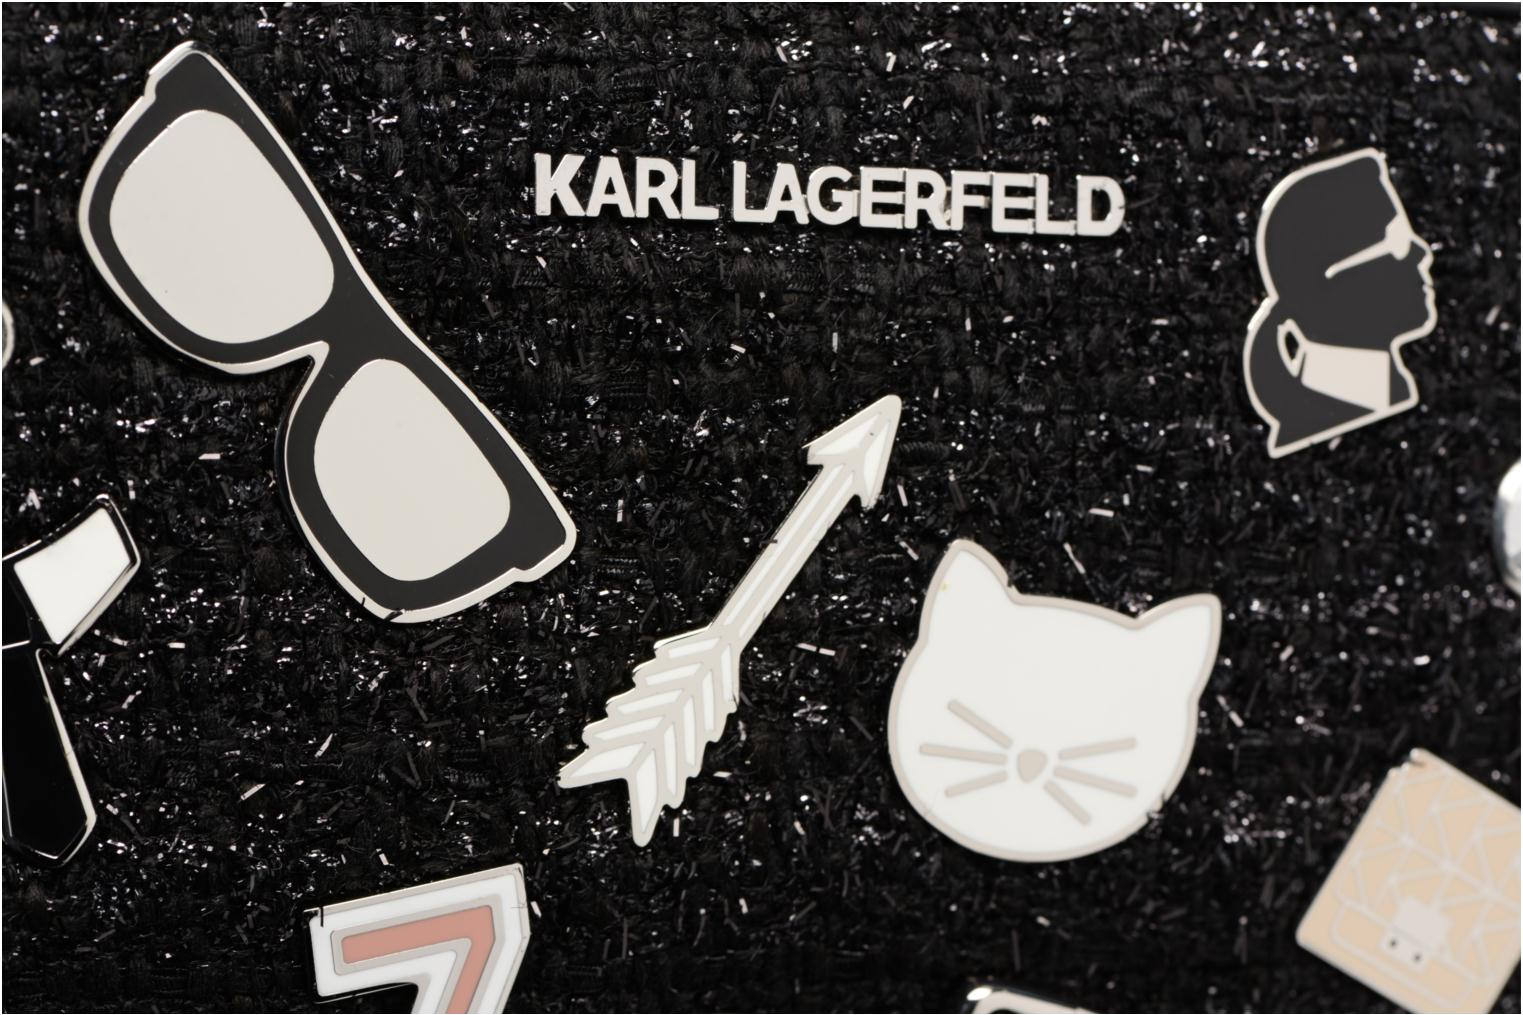 A999 Pins LAGERFELD Klassik Bag Camera KARL BLACK K Rq6xw1Y